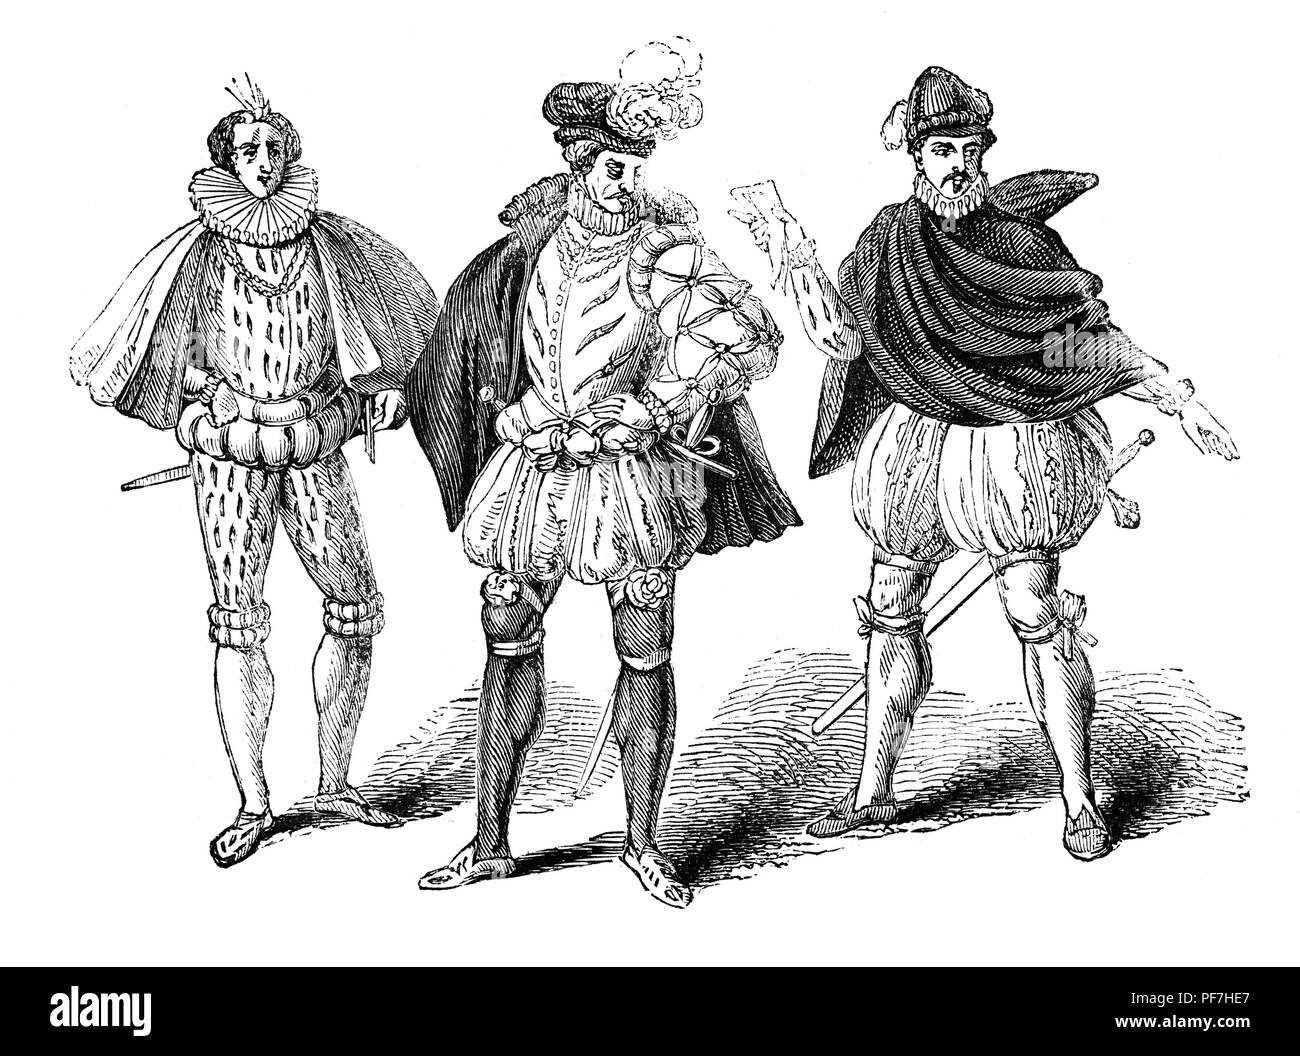 Fashion: For overseas men during the reign of Queen Elizabeth I. From left - French, German and Burgundian. - Stock Image